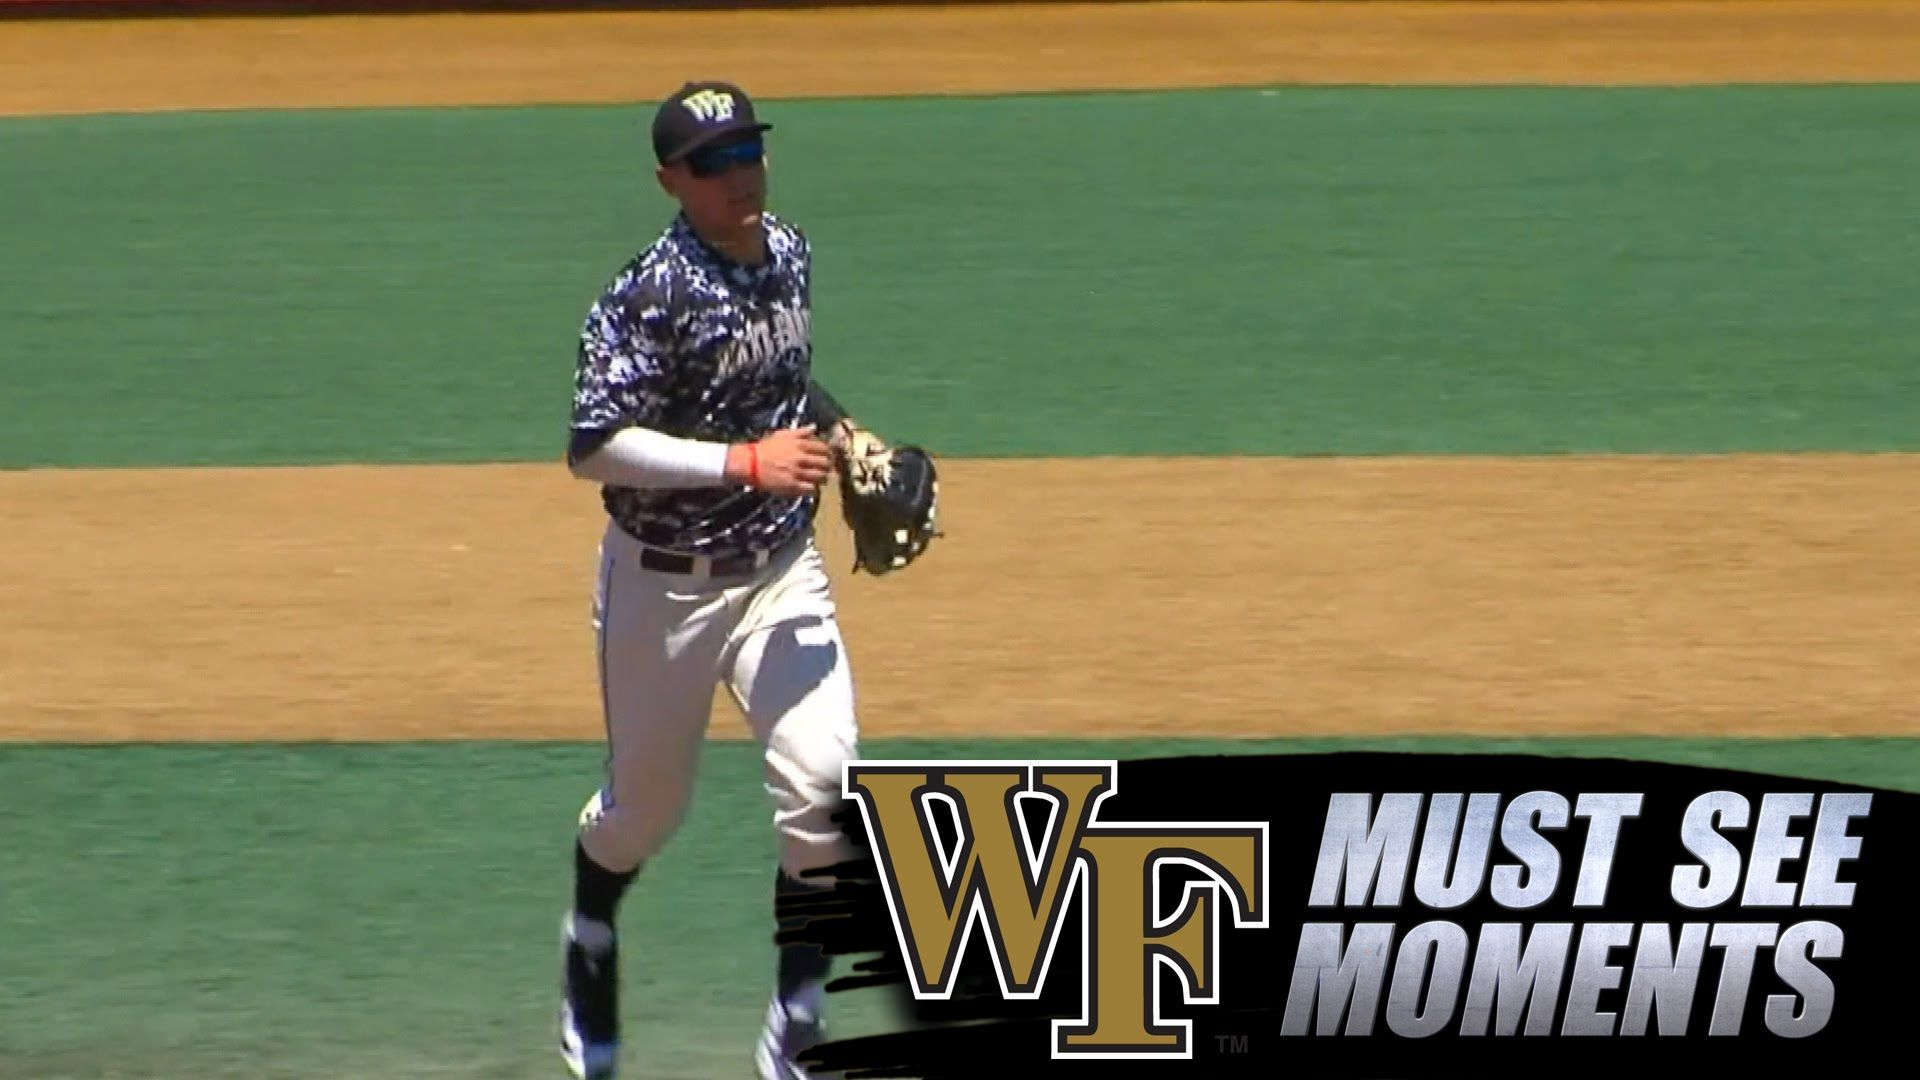 Keegan Maronpot makes an incredible leaping catch at third base for Wake Forest in their upset win over Florida State in this ACC Must See Moment! Watch Maronpot rob Quincy Nieporte of extra bases by soaring to make the amazing grab!